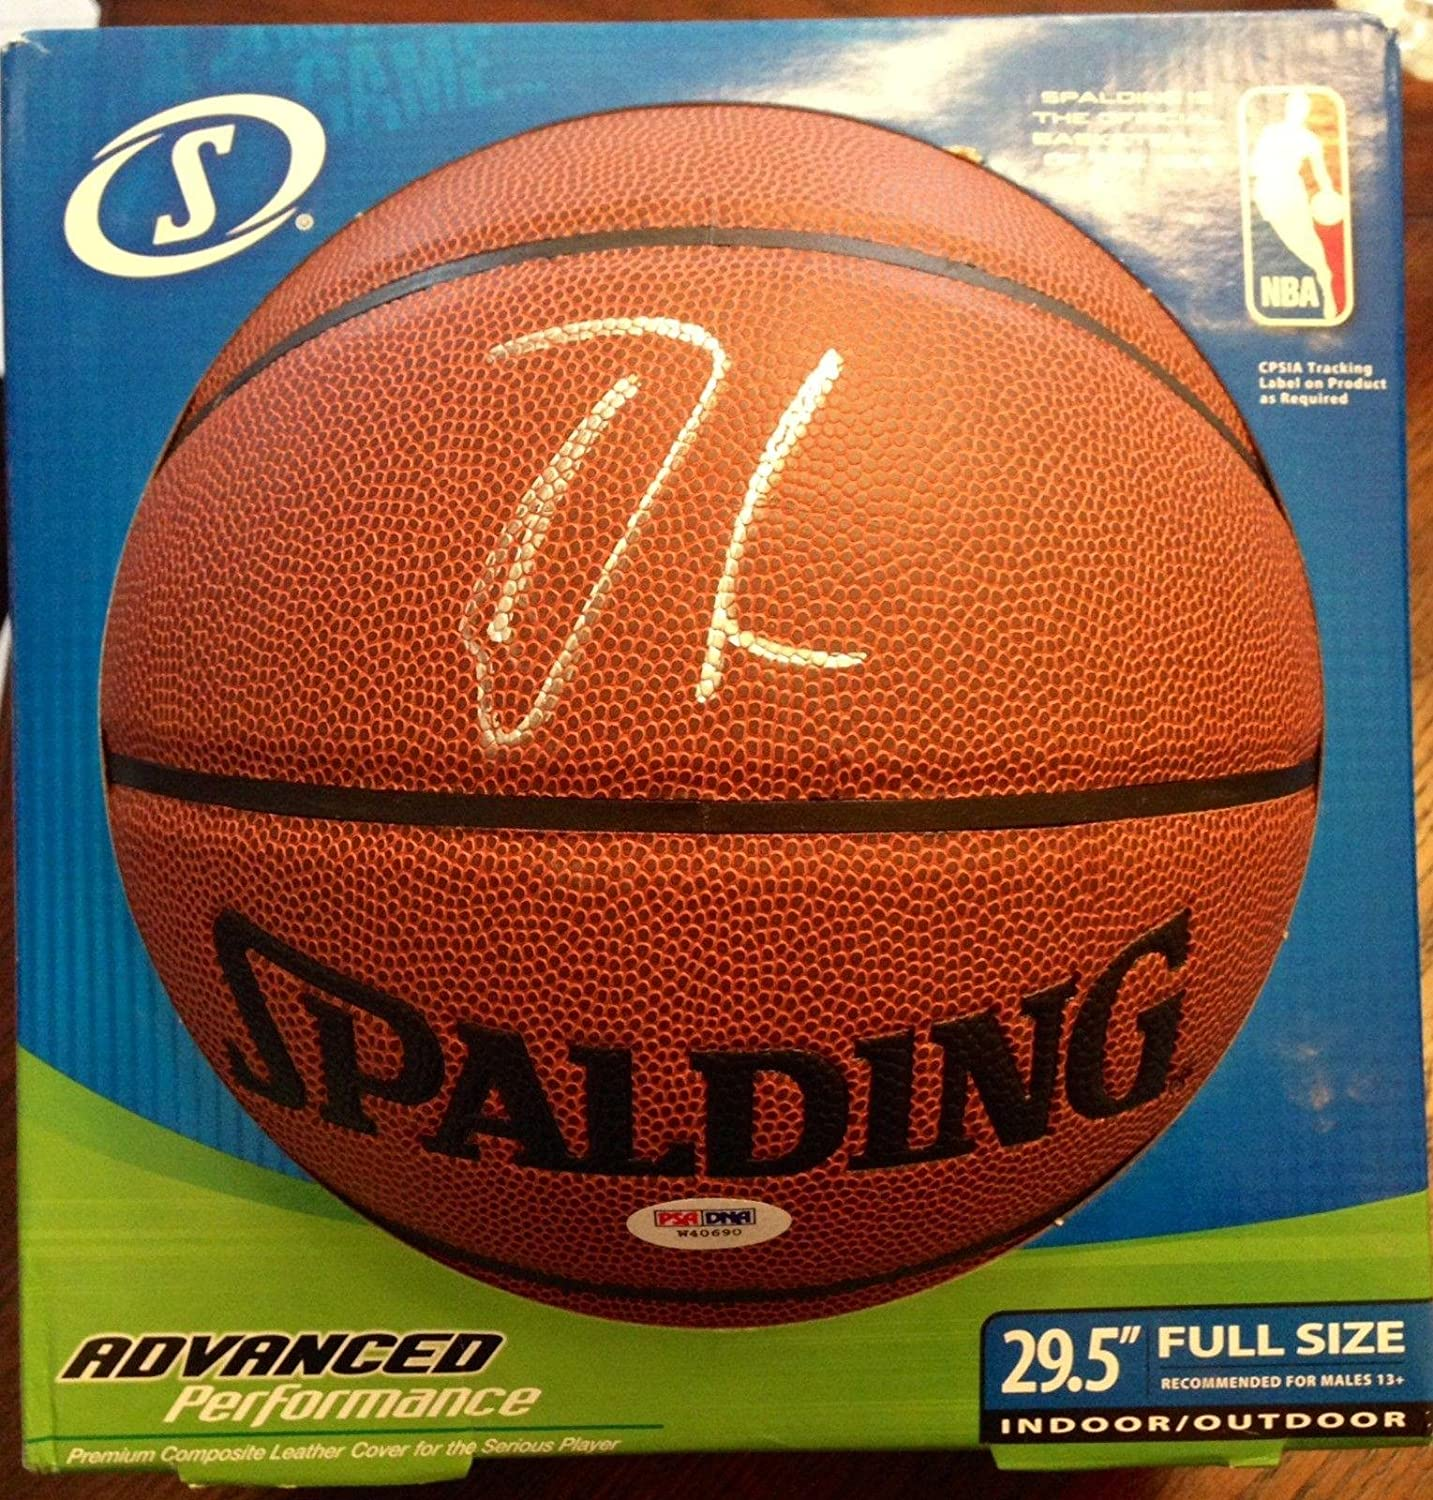 Damian Lillard Signed Basketball - Full Size COA - PSA/DNA Certified - Autographed Basketballs Sports Memorabilia